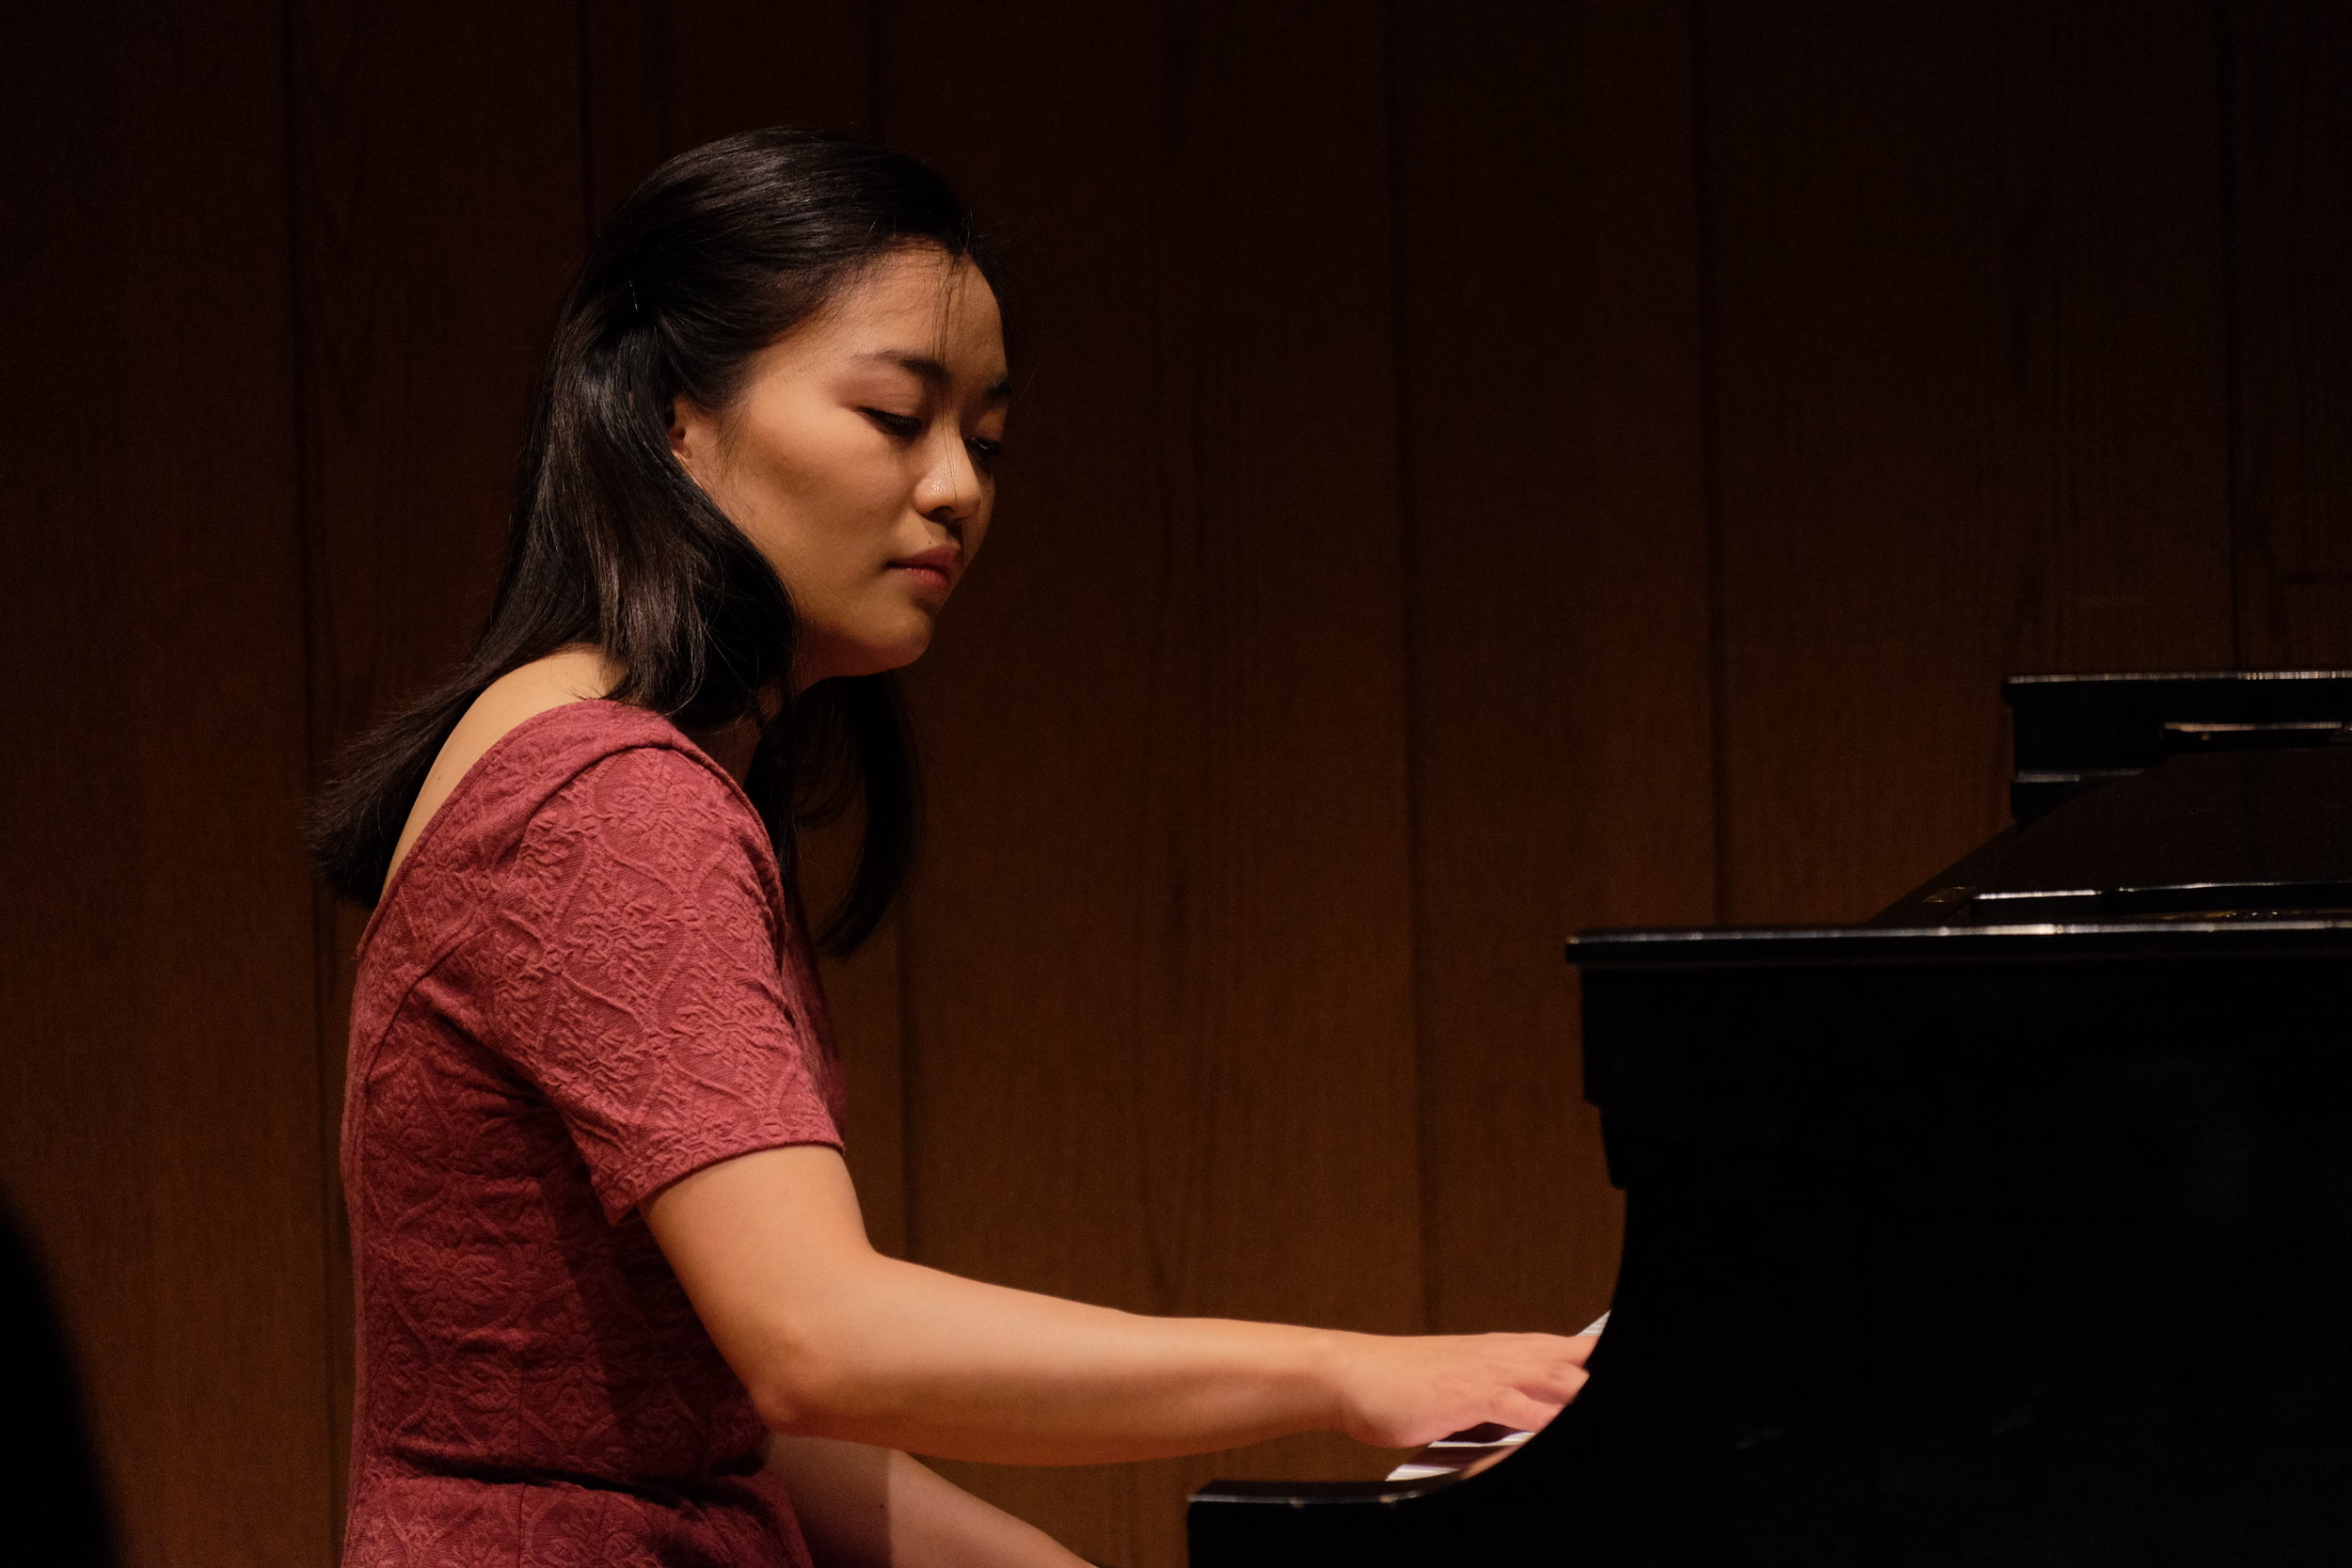 June performs works by Schubert, Liszt, Beethoven in a chamber music recital at Rose Recital Hall at the University of Pennsylvania.